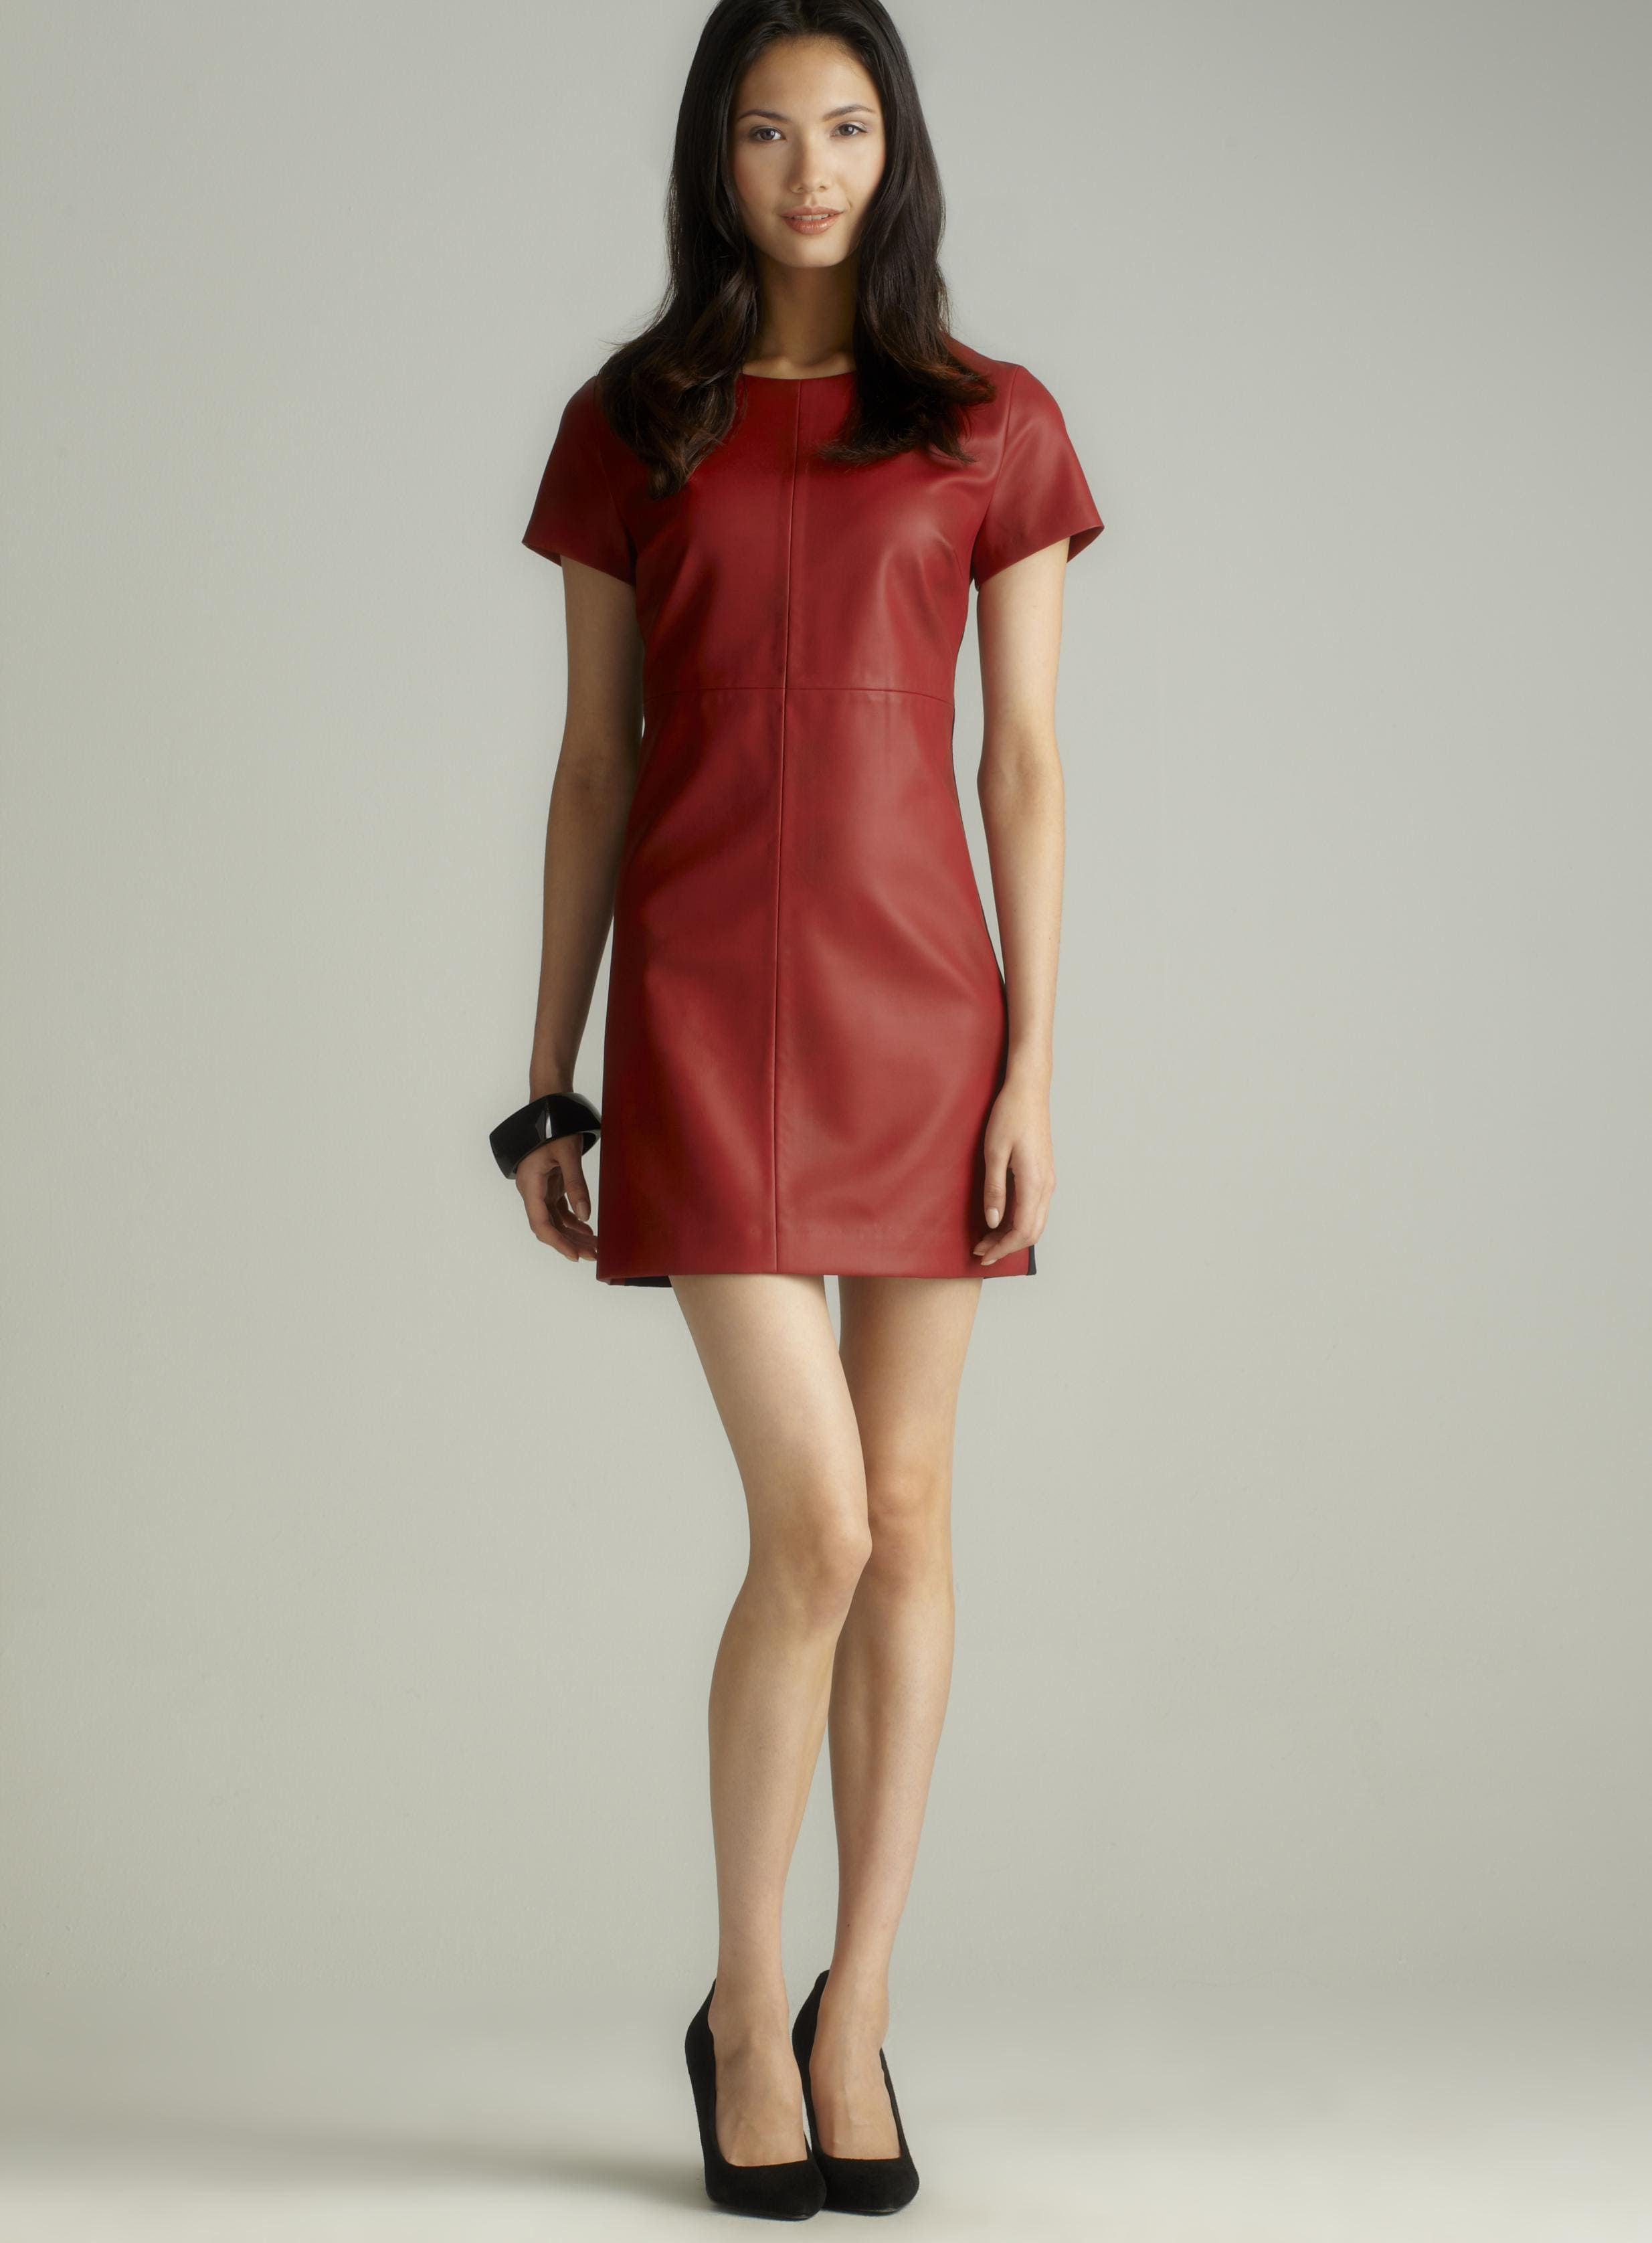 Jaye.e. Faux Leather Dress